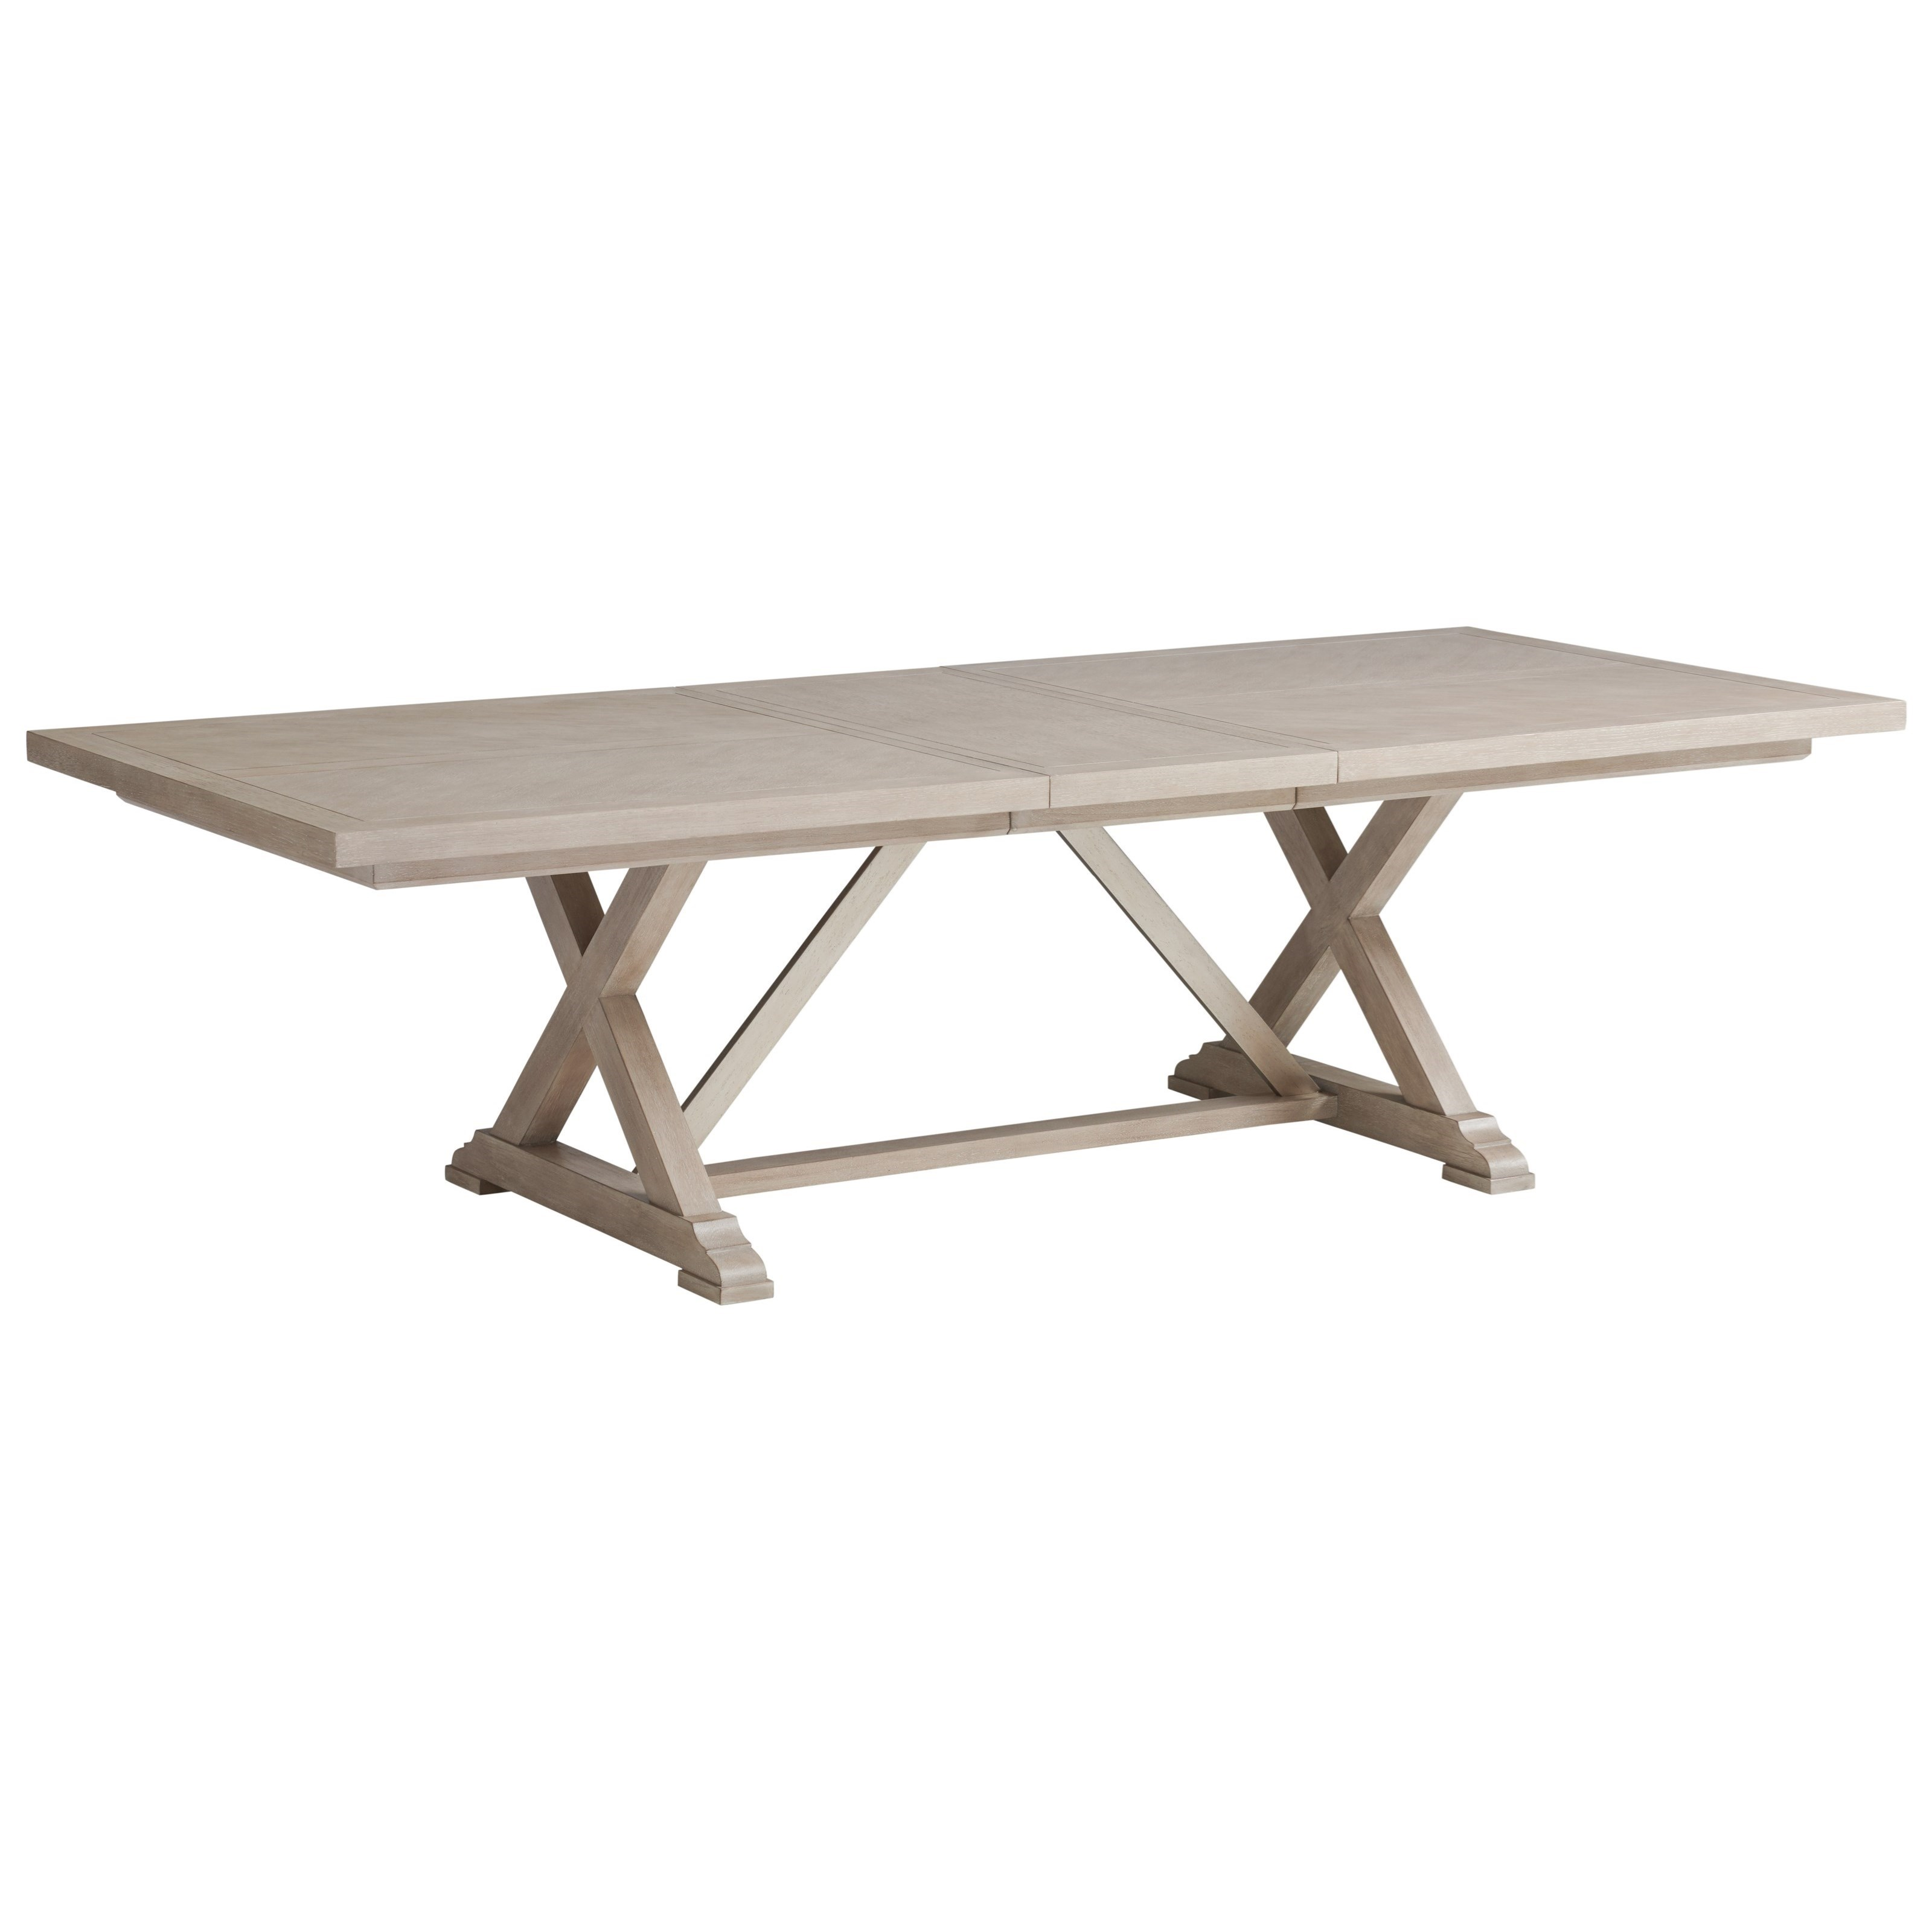 Malibu Rockpoint Rectangular Dining Table by Barclay Butera at Baer's Furniture